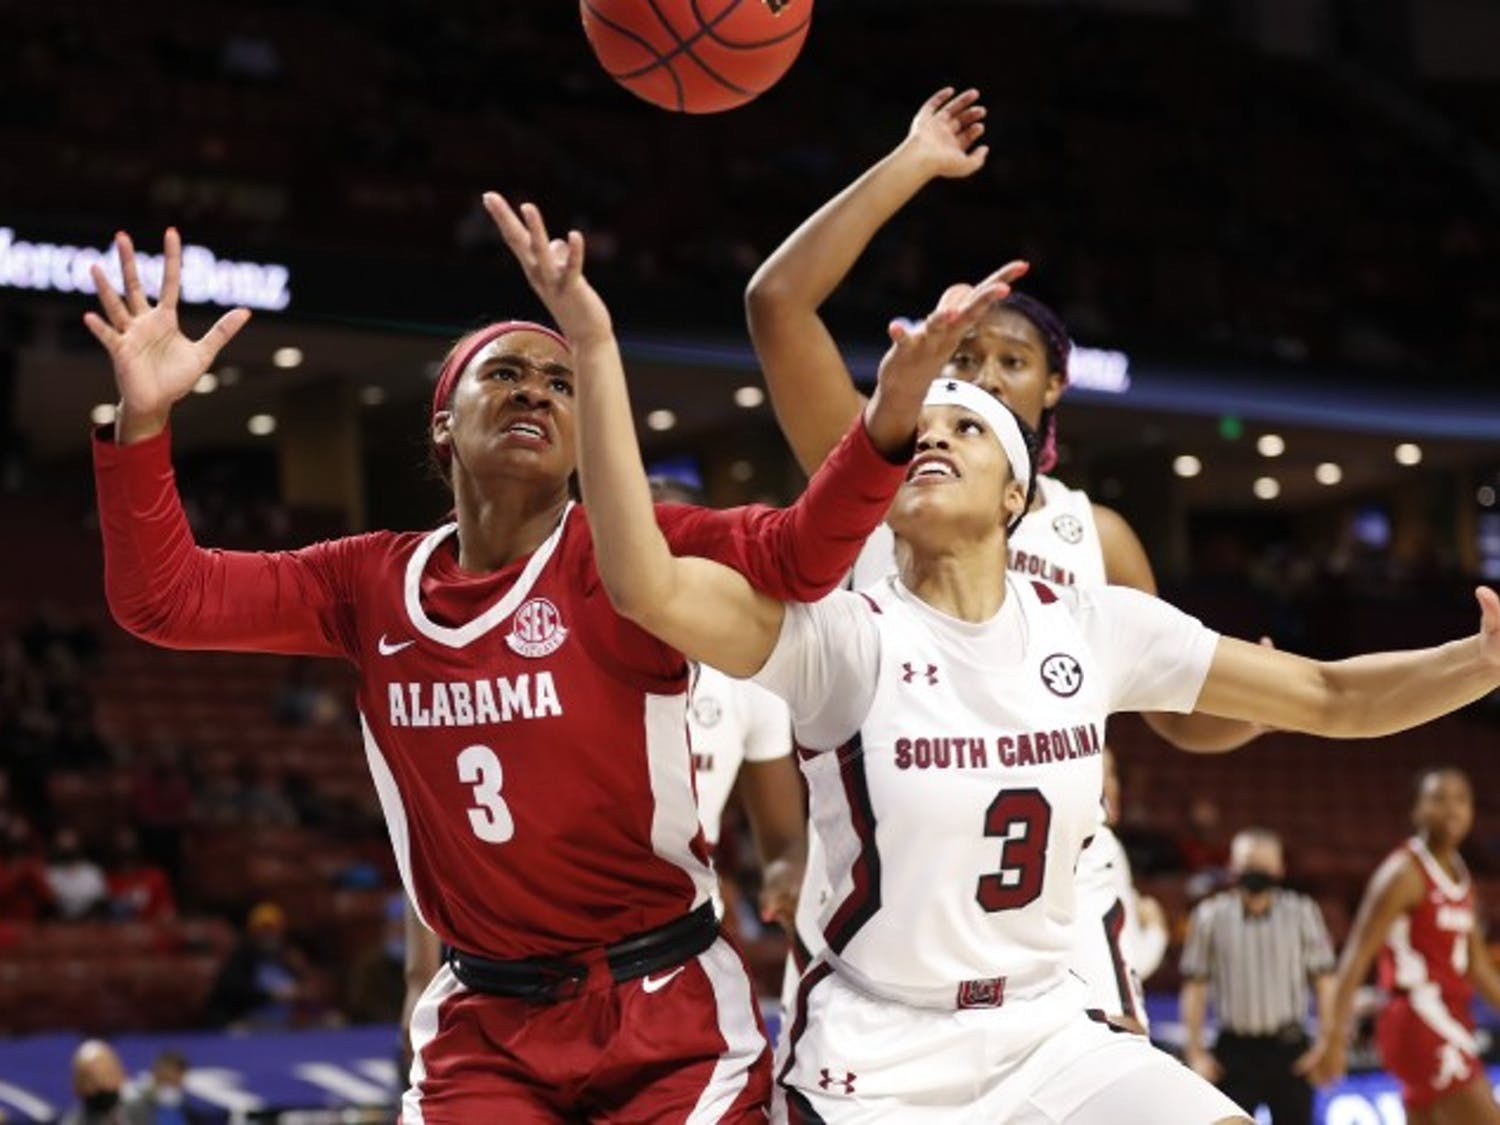 Junior guard Destanni Henderson fights for a loose ball in the South Carolina's win over Alabama Friday. The Gamecocks will play Tennessee Saturday for the SEC tournament semifinals.